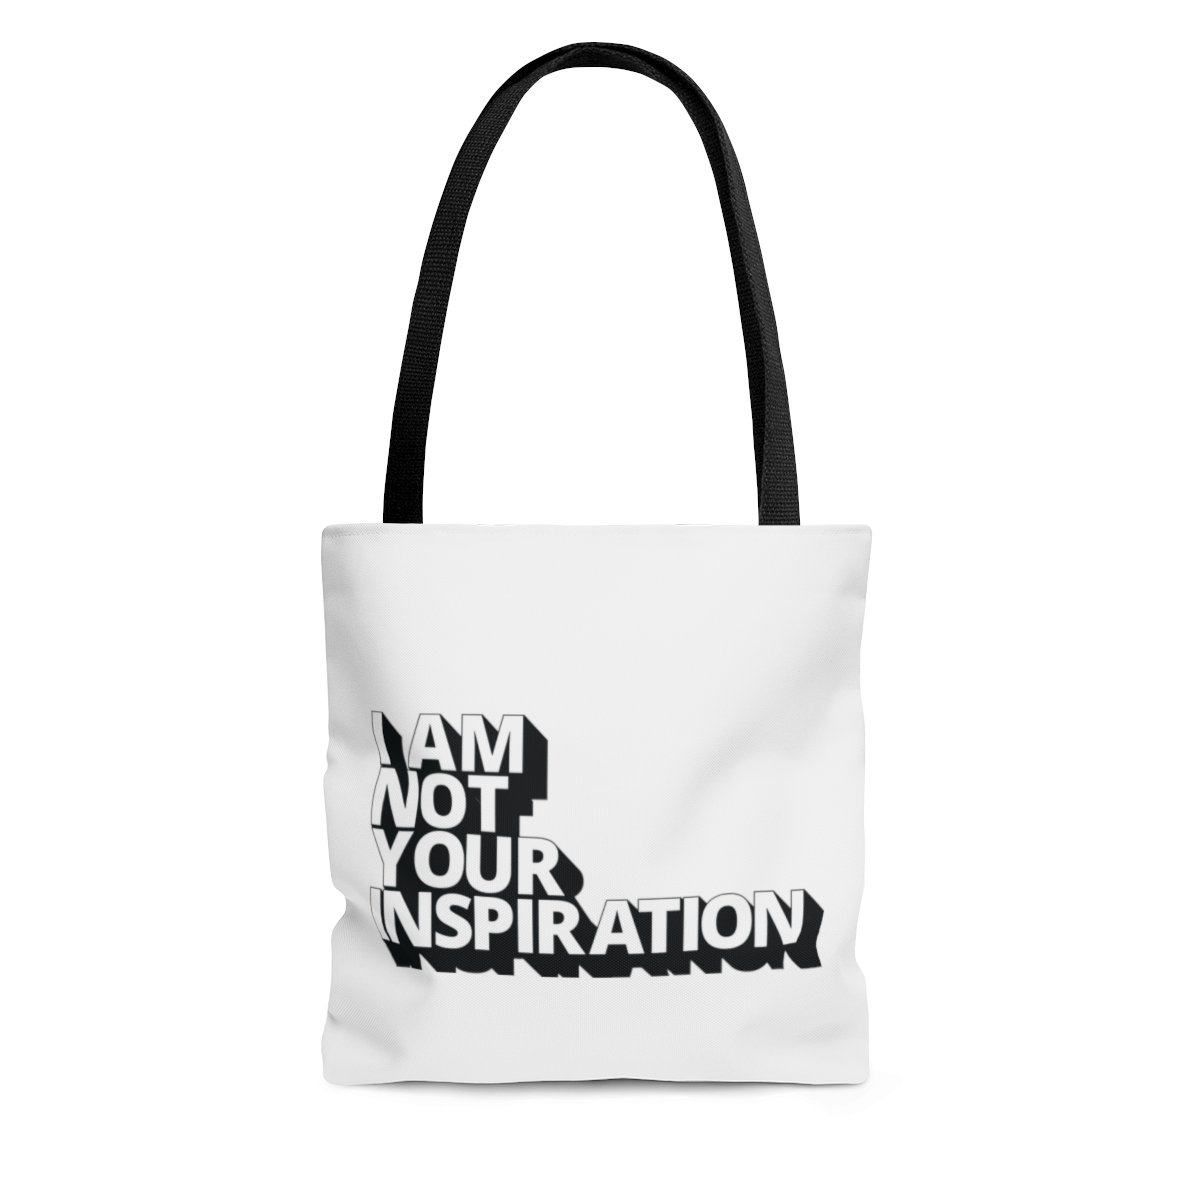 Not Your Inspiration Tote Bag - Uncomfortable Revolution